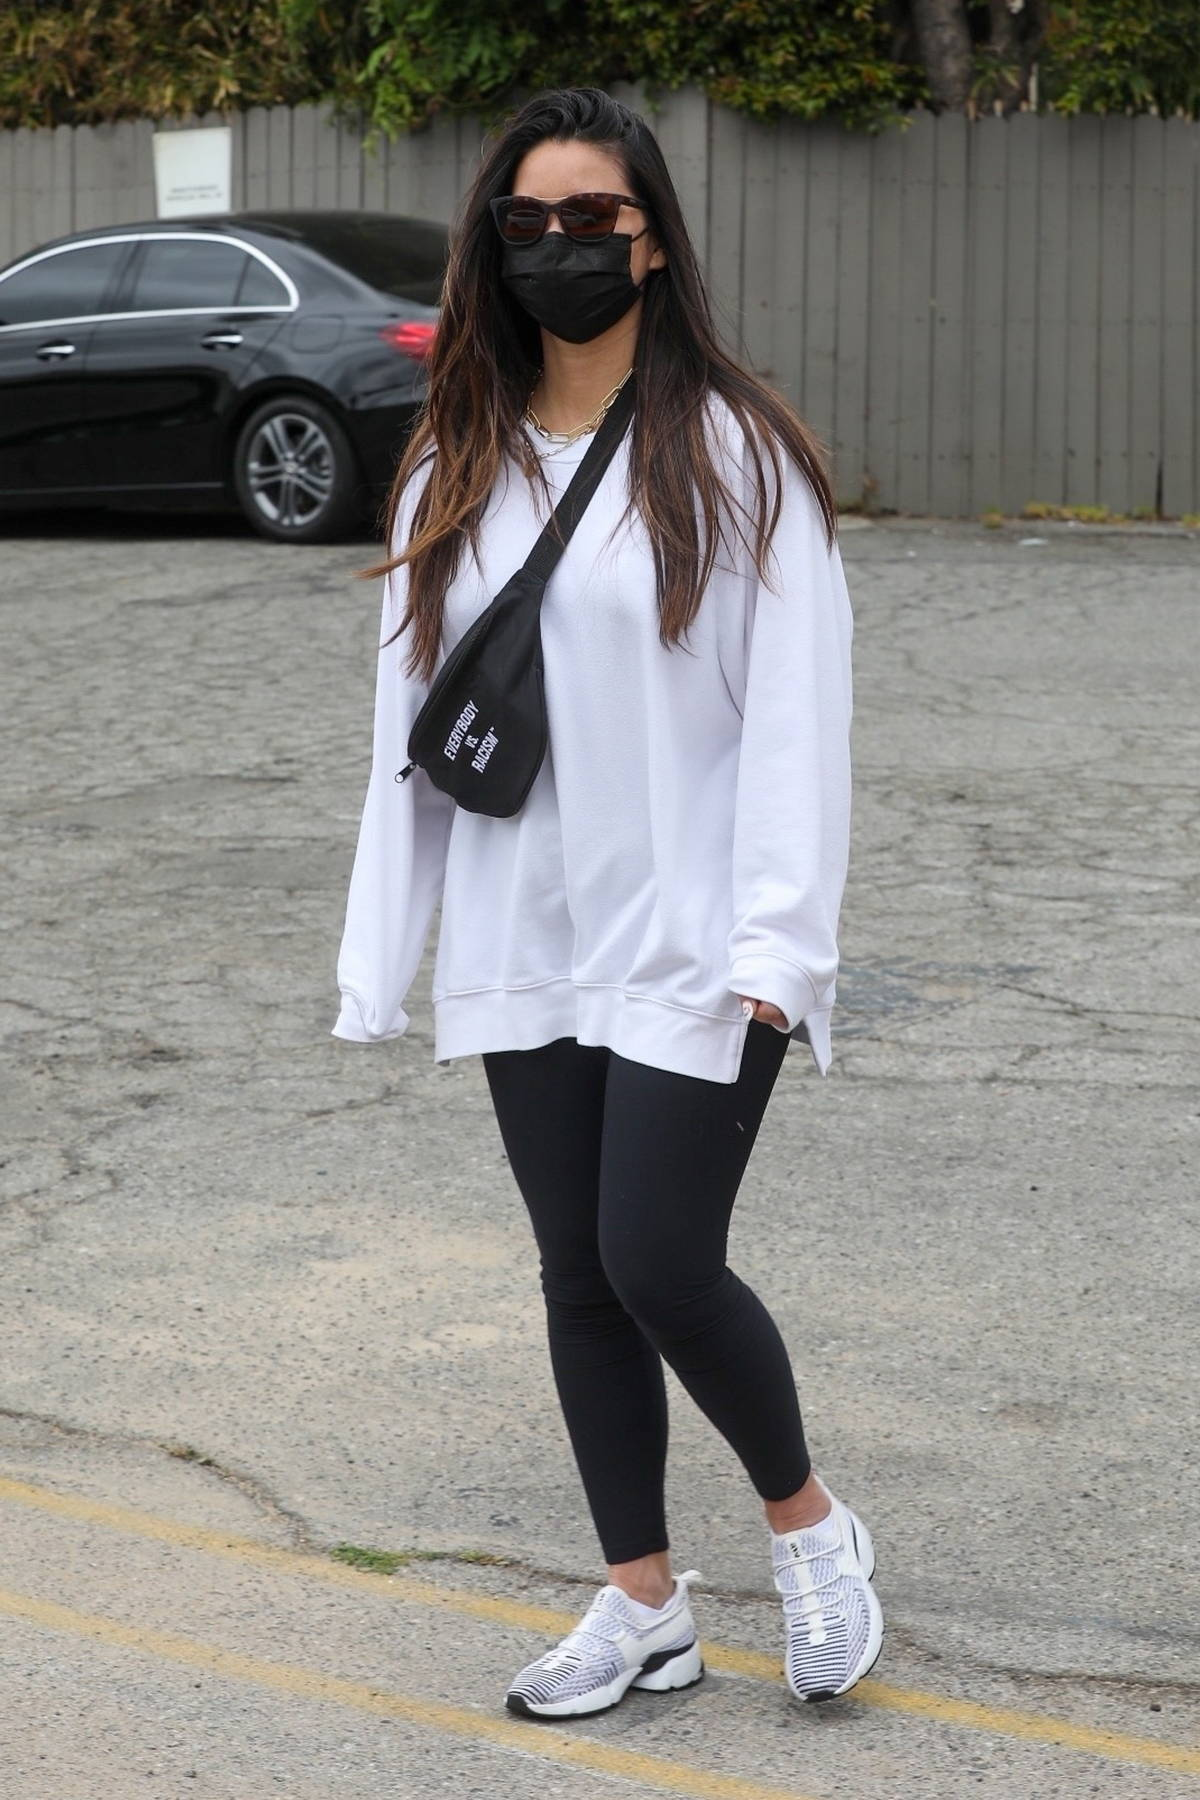 Olivia Munn signs a few autograph as she leaves the gym in West Hollywood, California